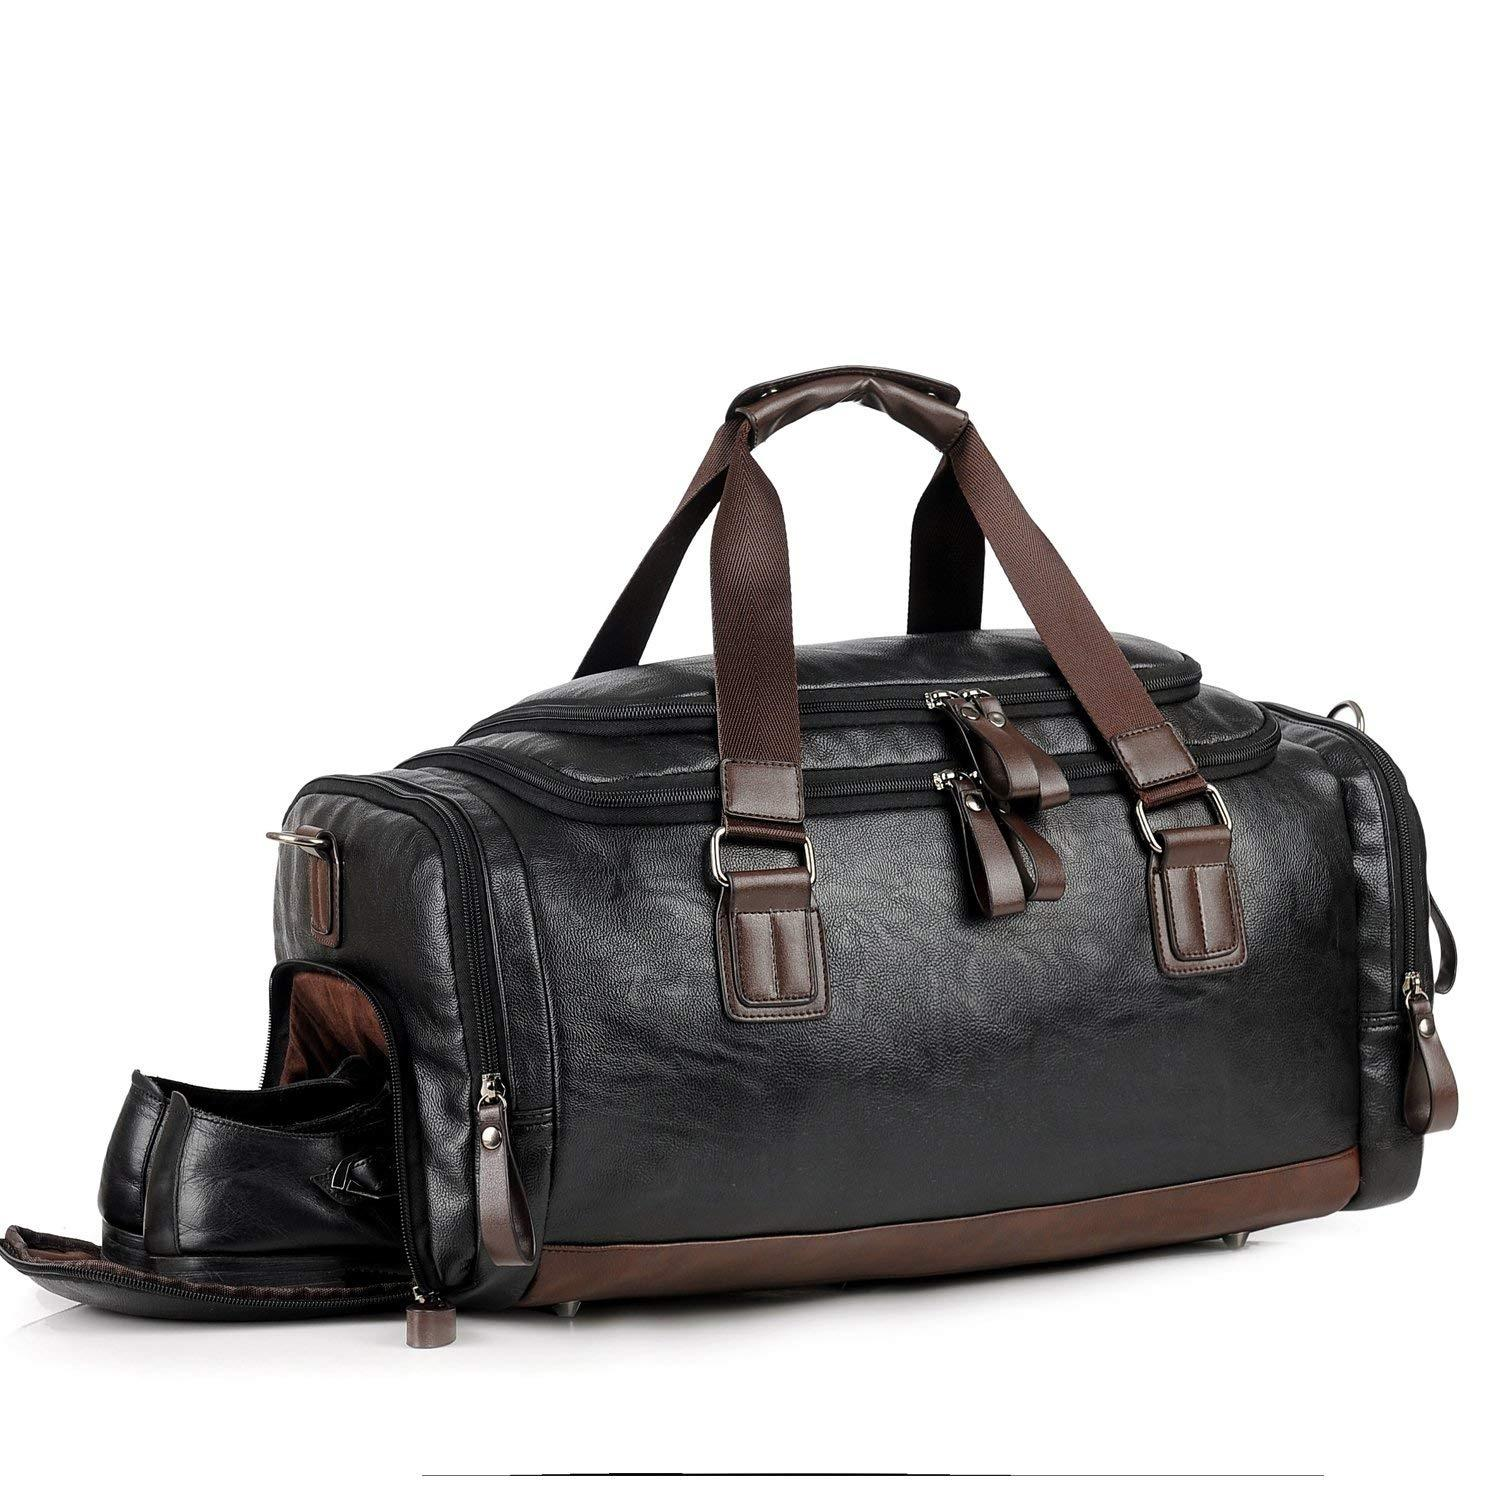 UK Men Large Leather Duffle Luggage Weekend Gym Sport Overnight Travel Tote Bag